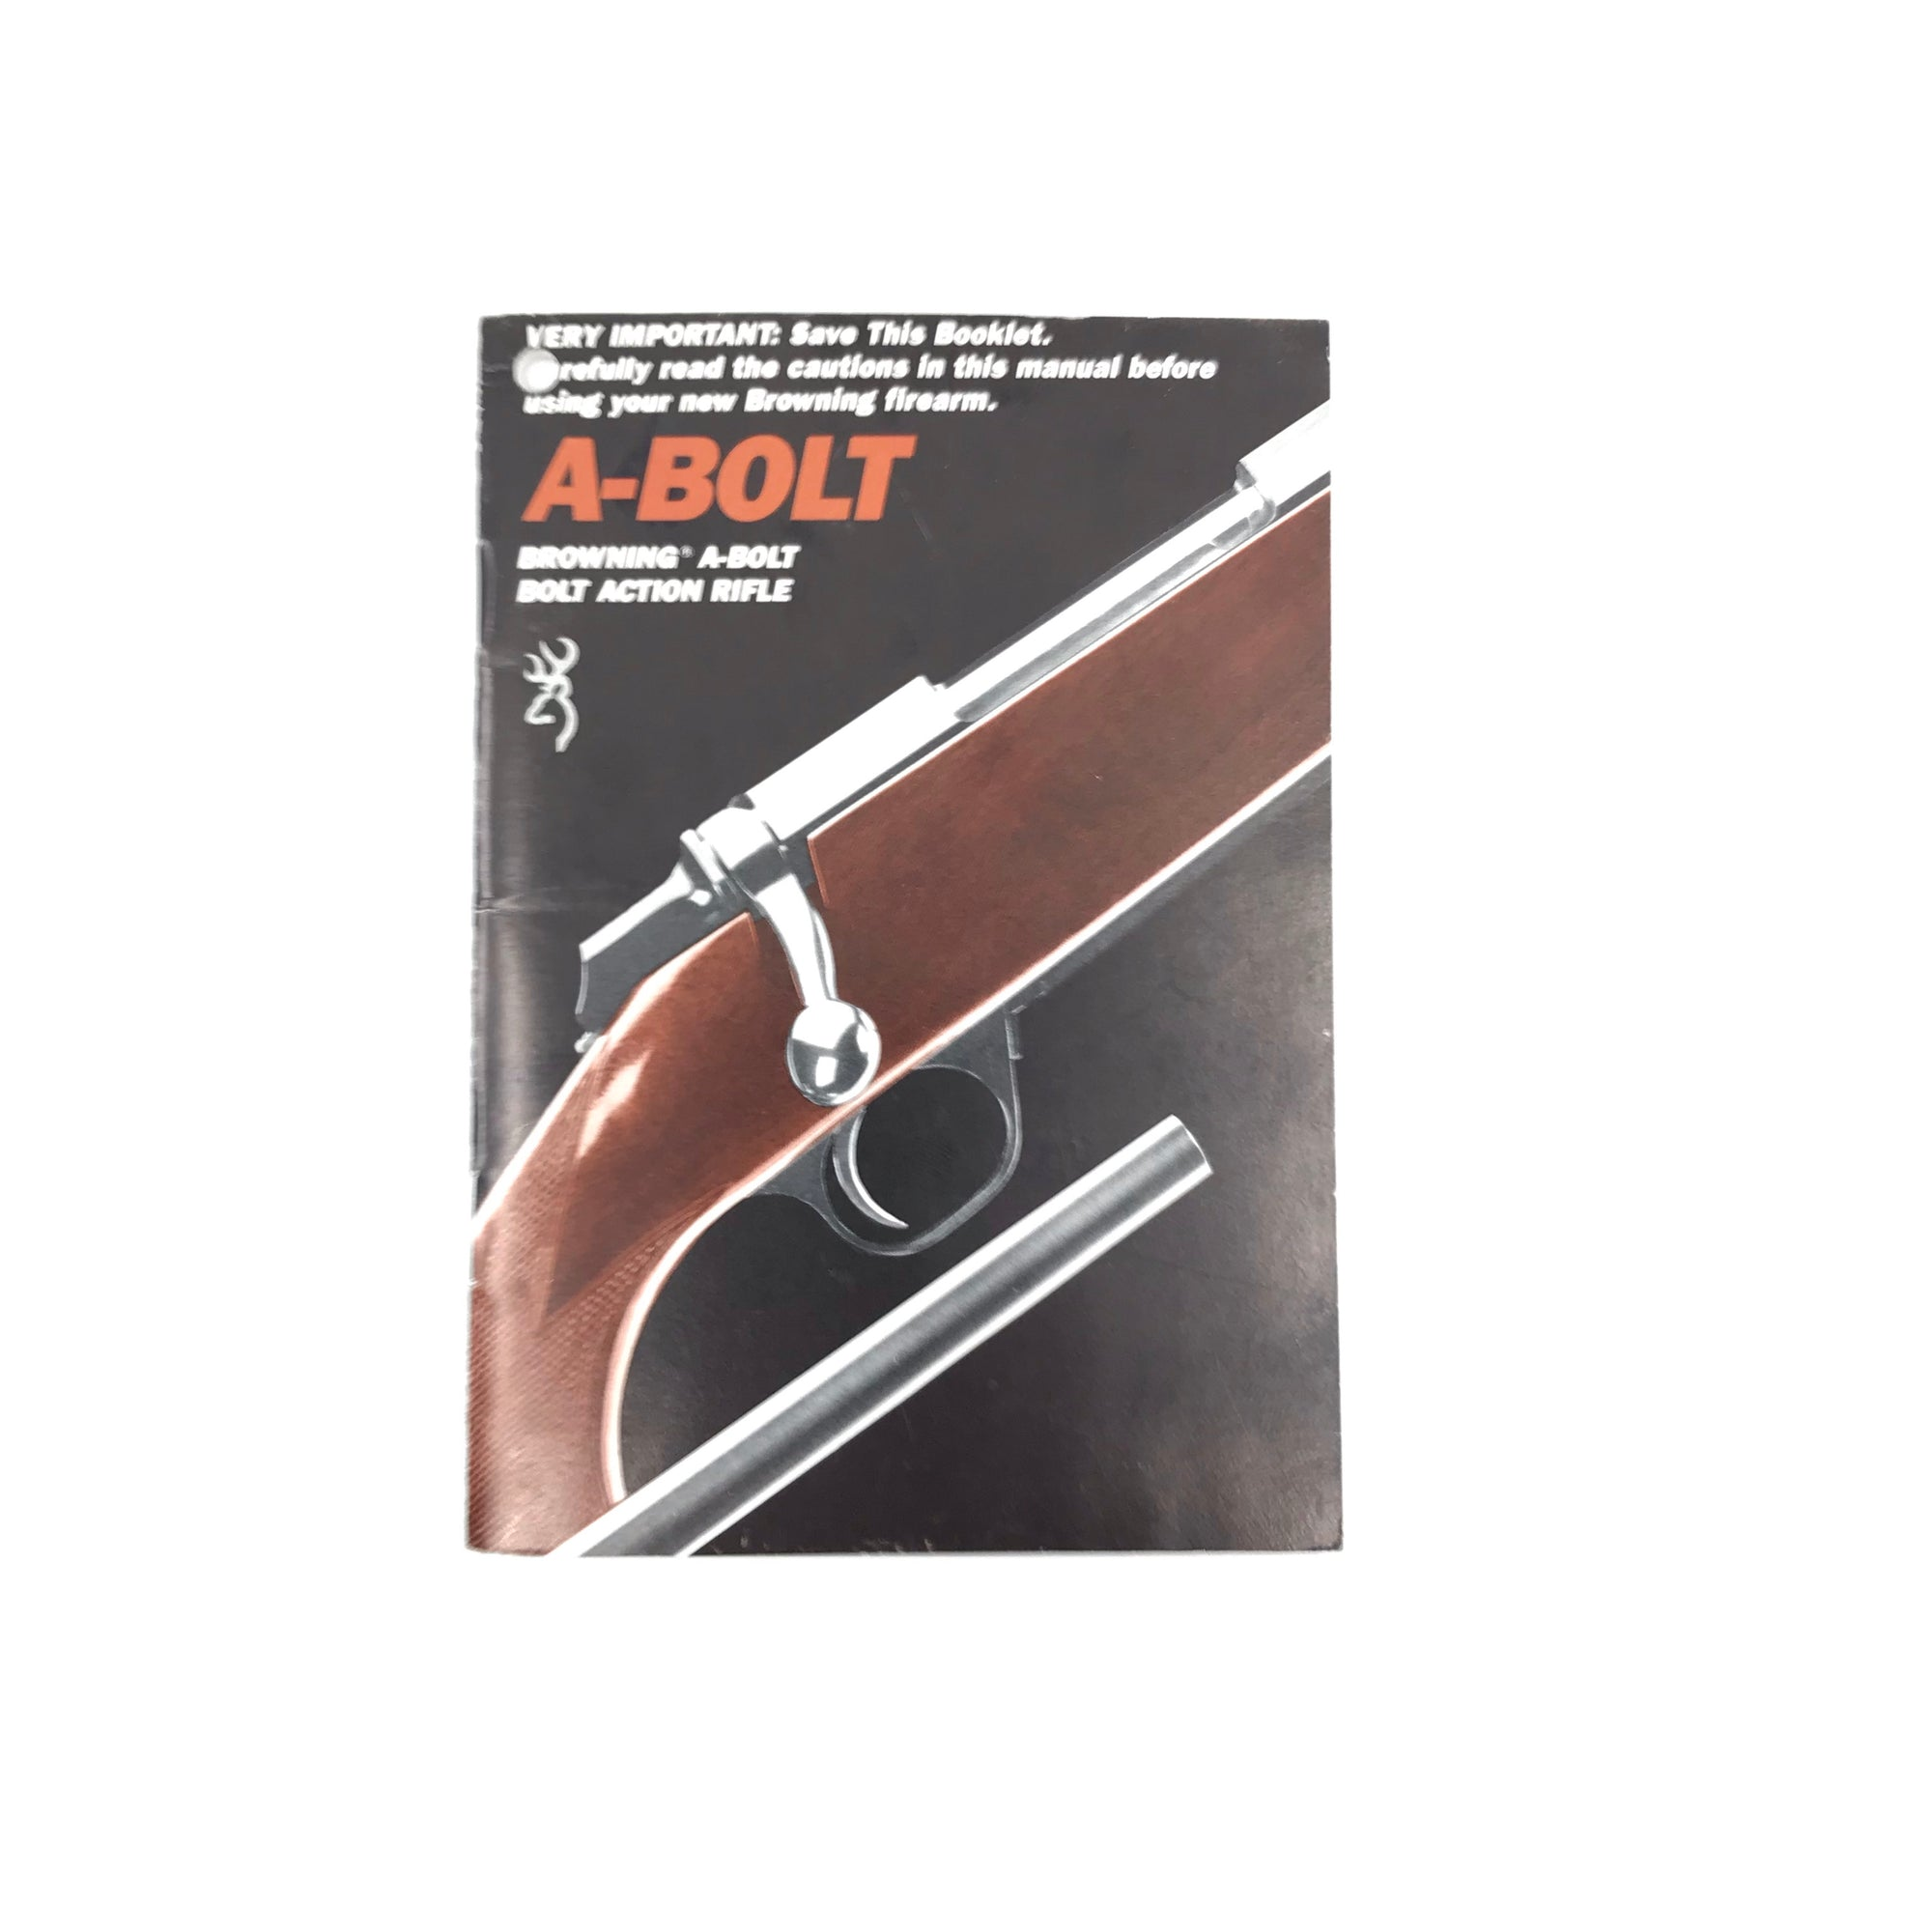 Browning A-Bolt Bolt Action Rifle Manual (1989)